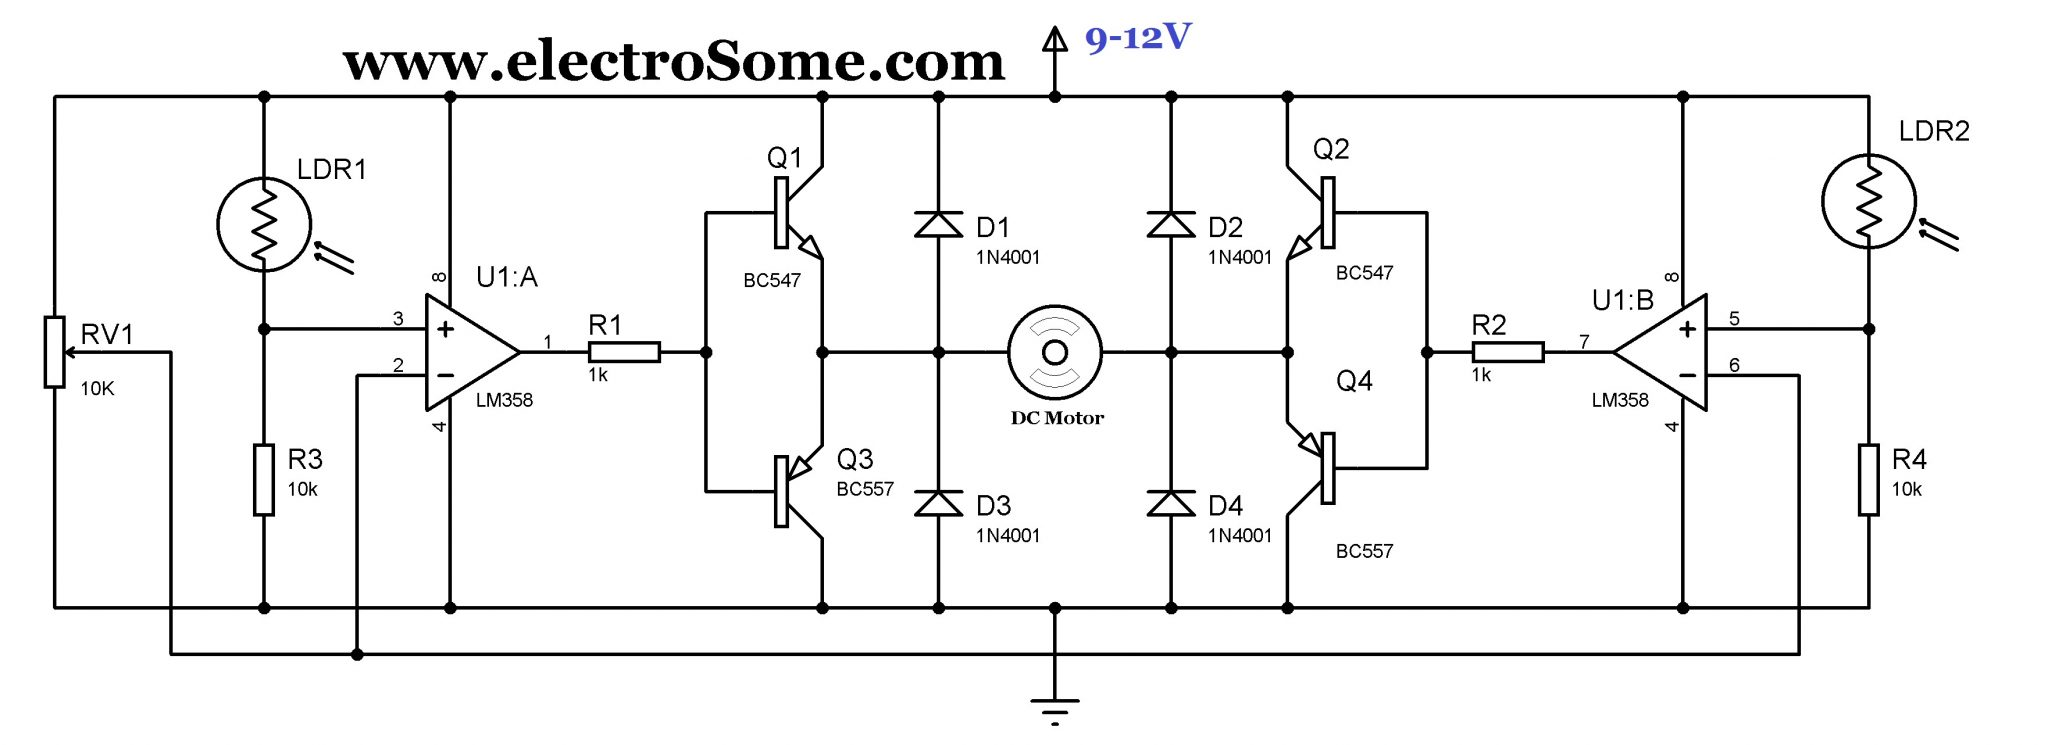 simple solar tracker circuit using lm358 rh electrosome com solar tracker circuit diagram using microcontroller solar tracker circuit diagram using microcontroller